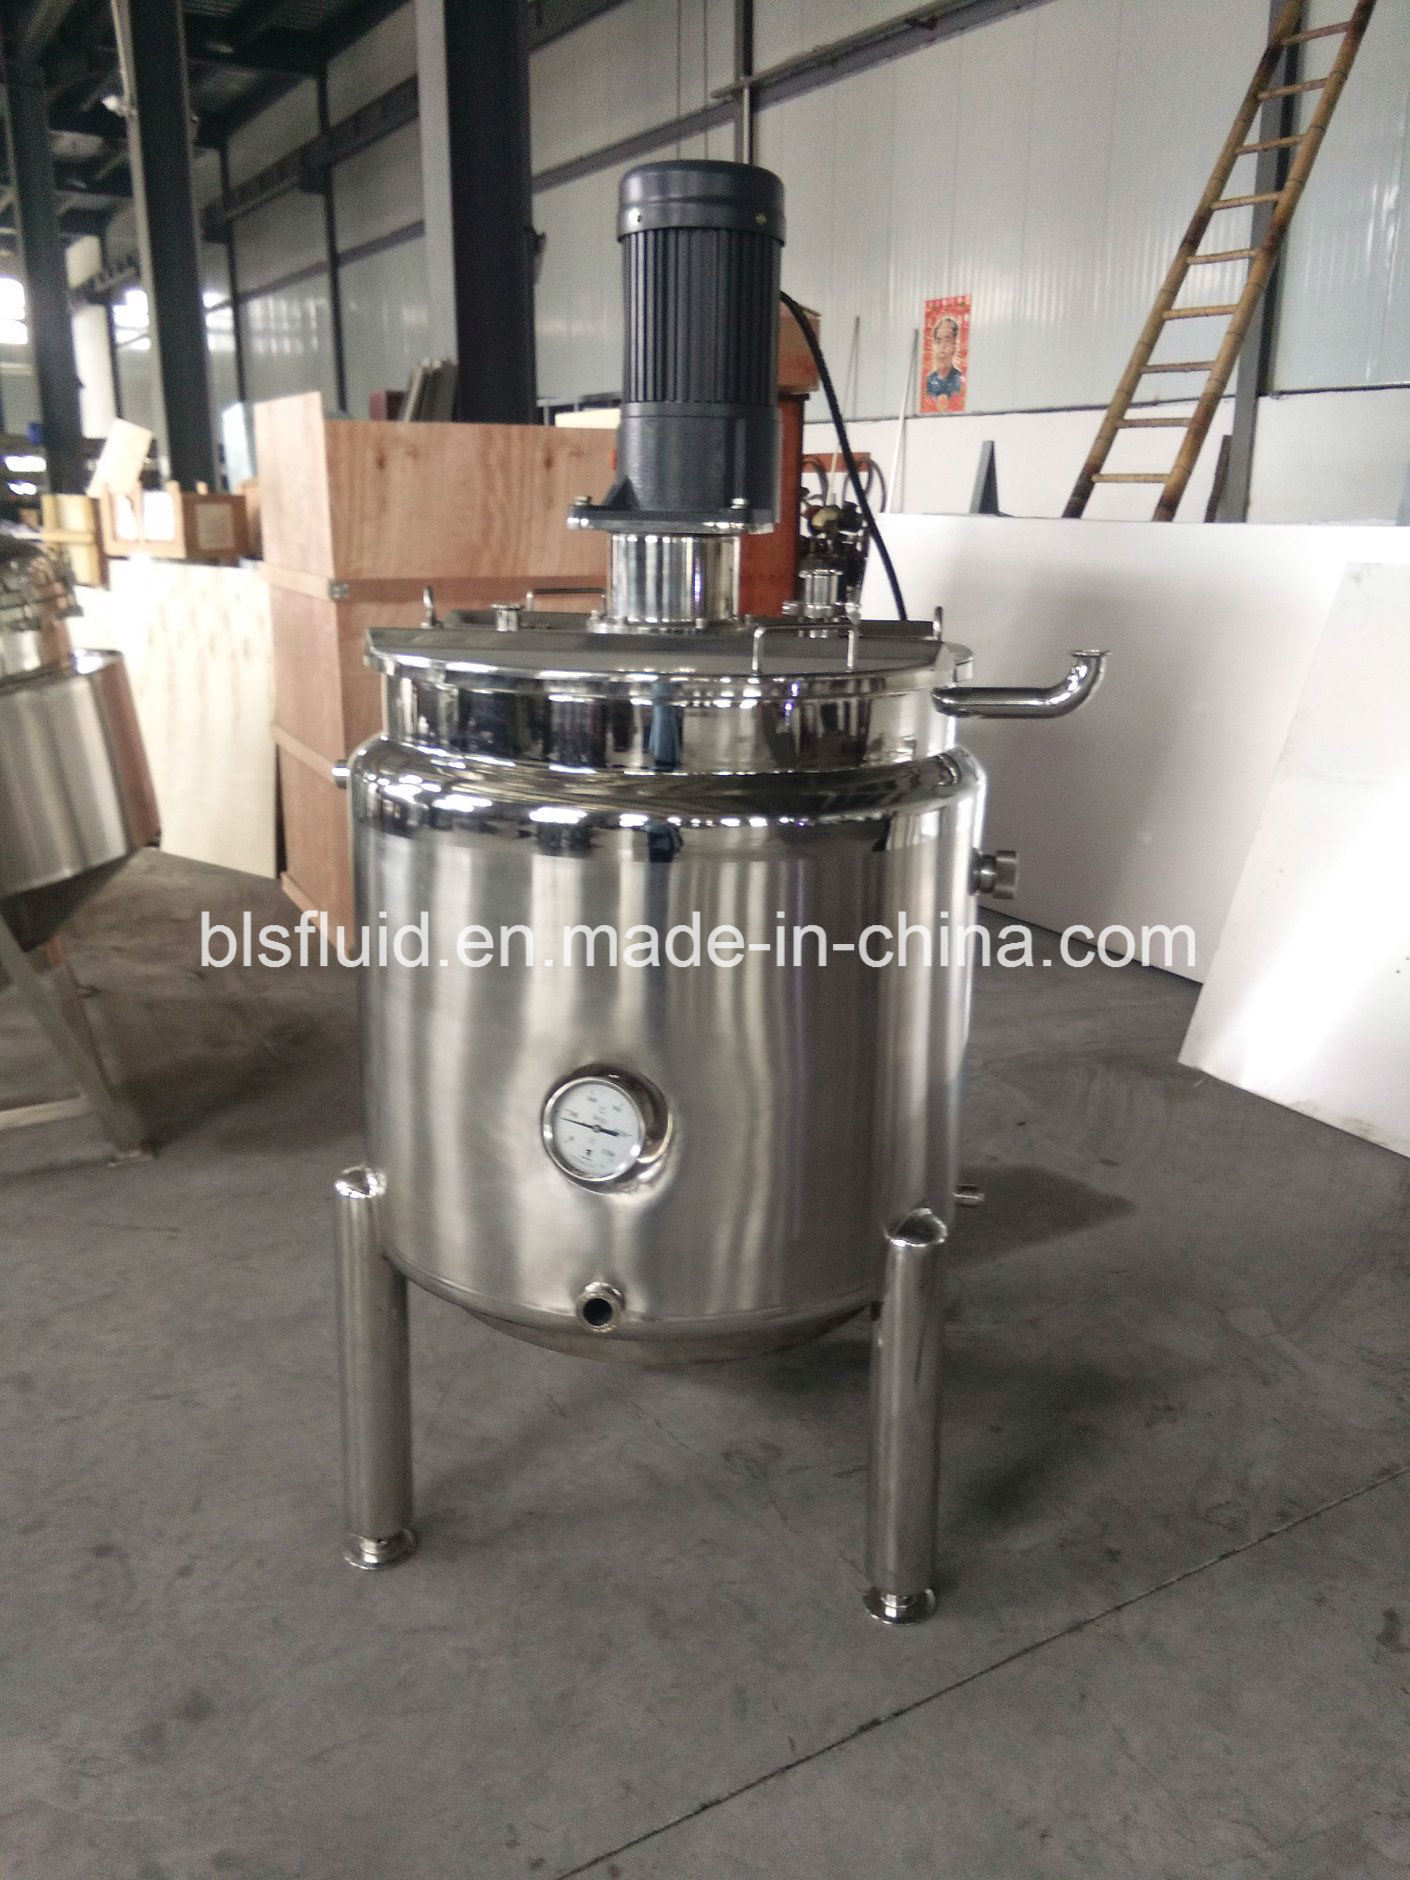 Industrial Stainless Steel 200L LPG Double Jacket Mixer Milk Boiler